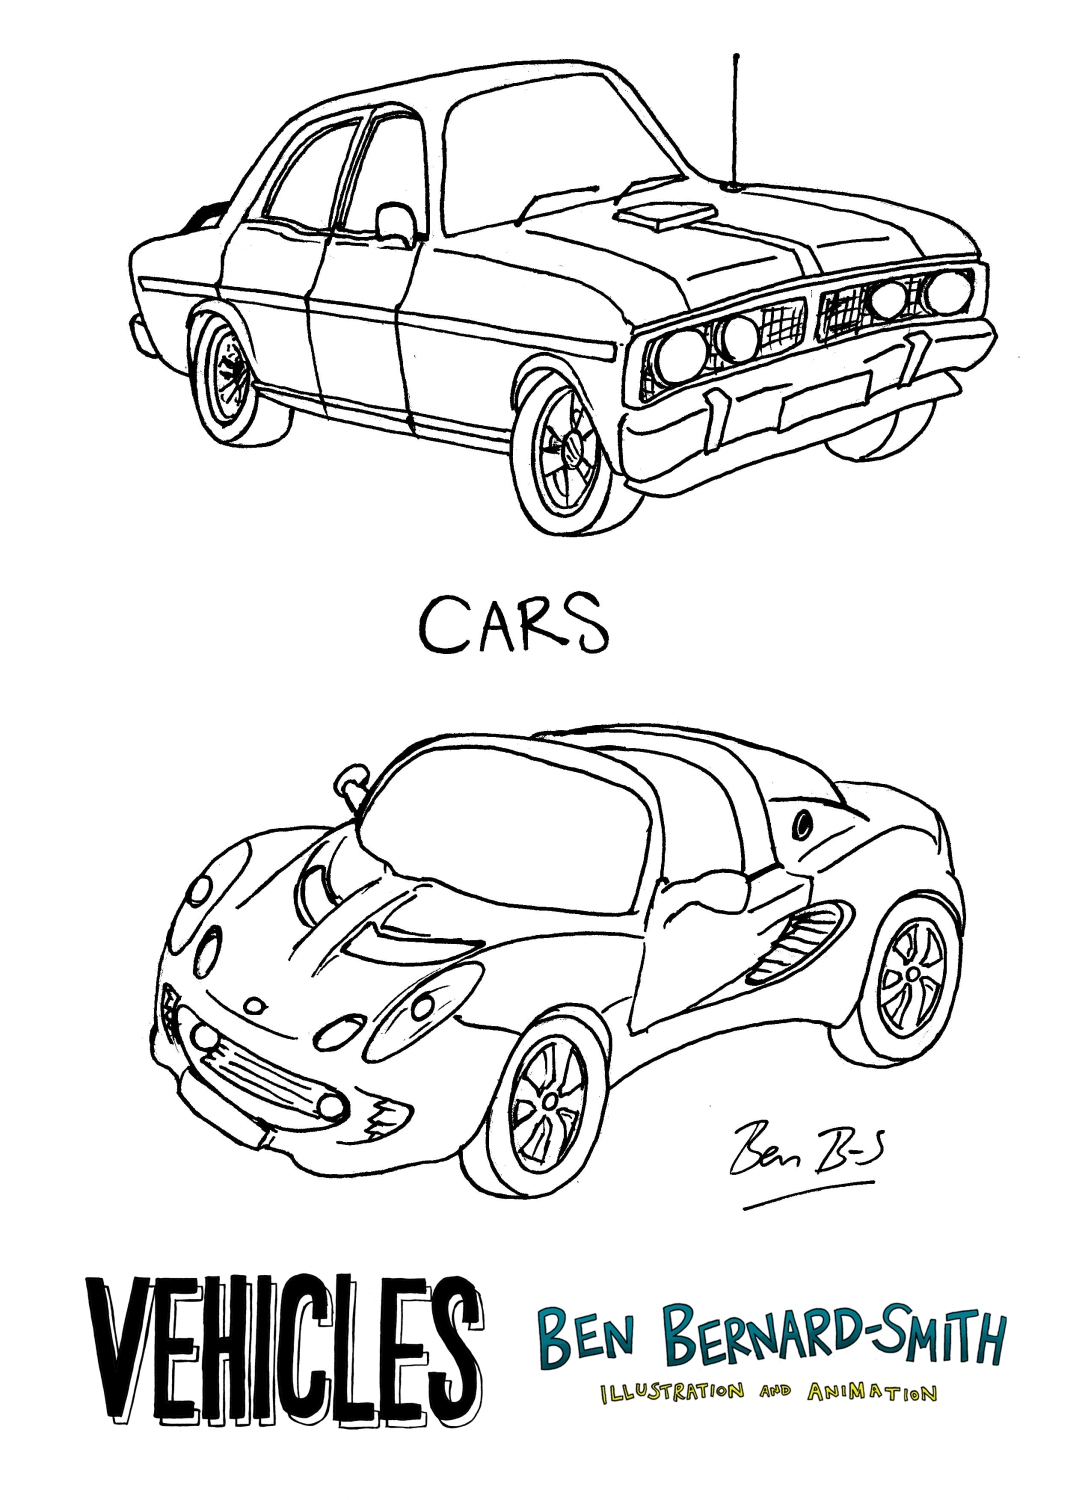 vehicles-4